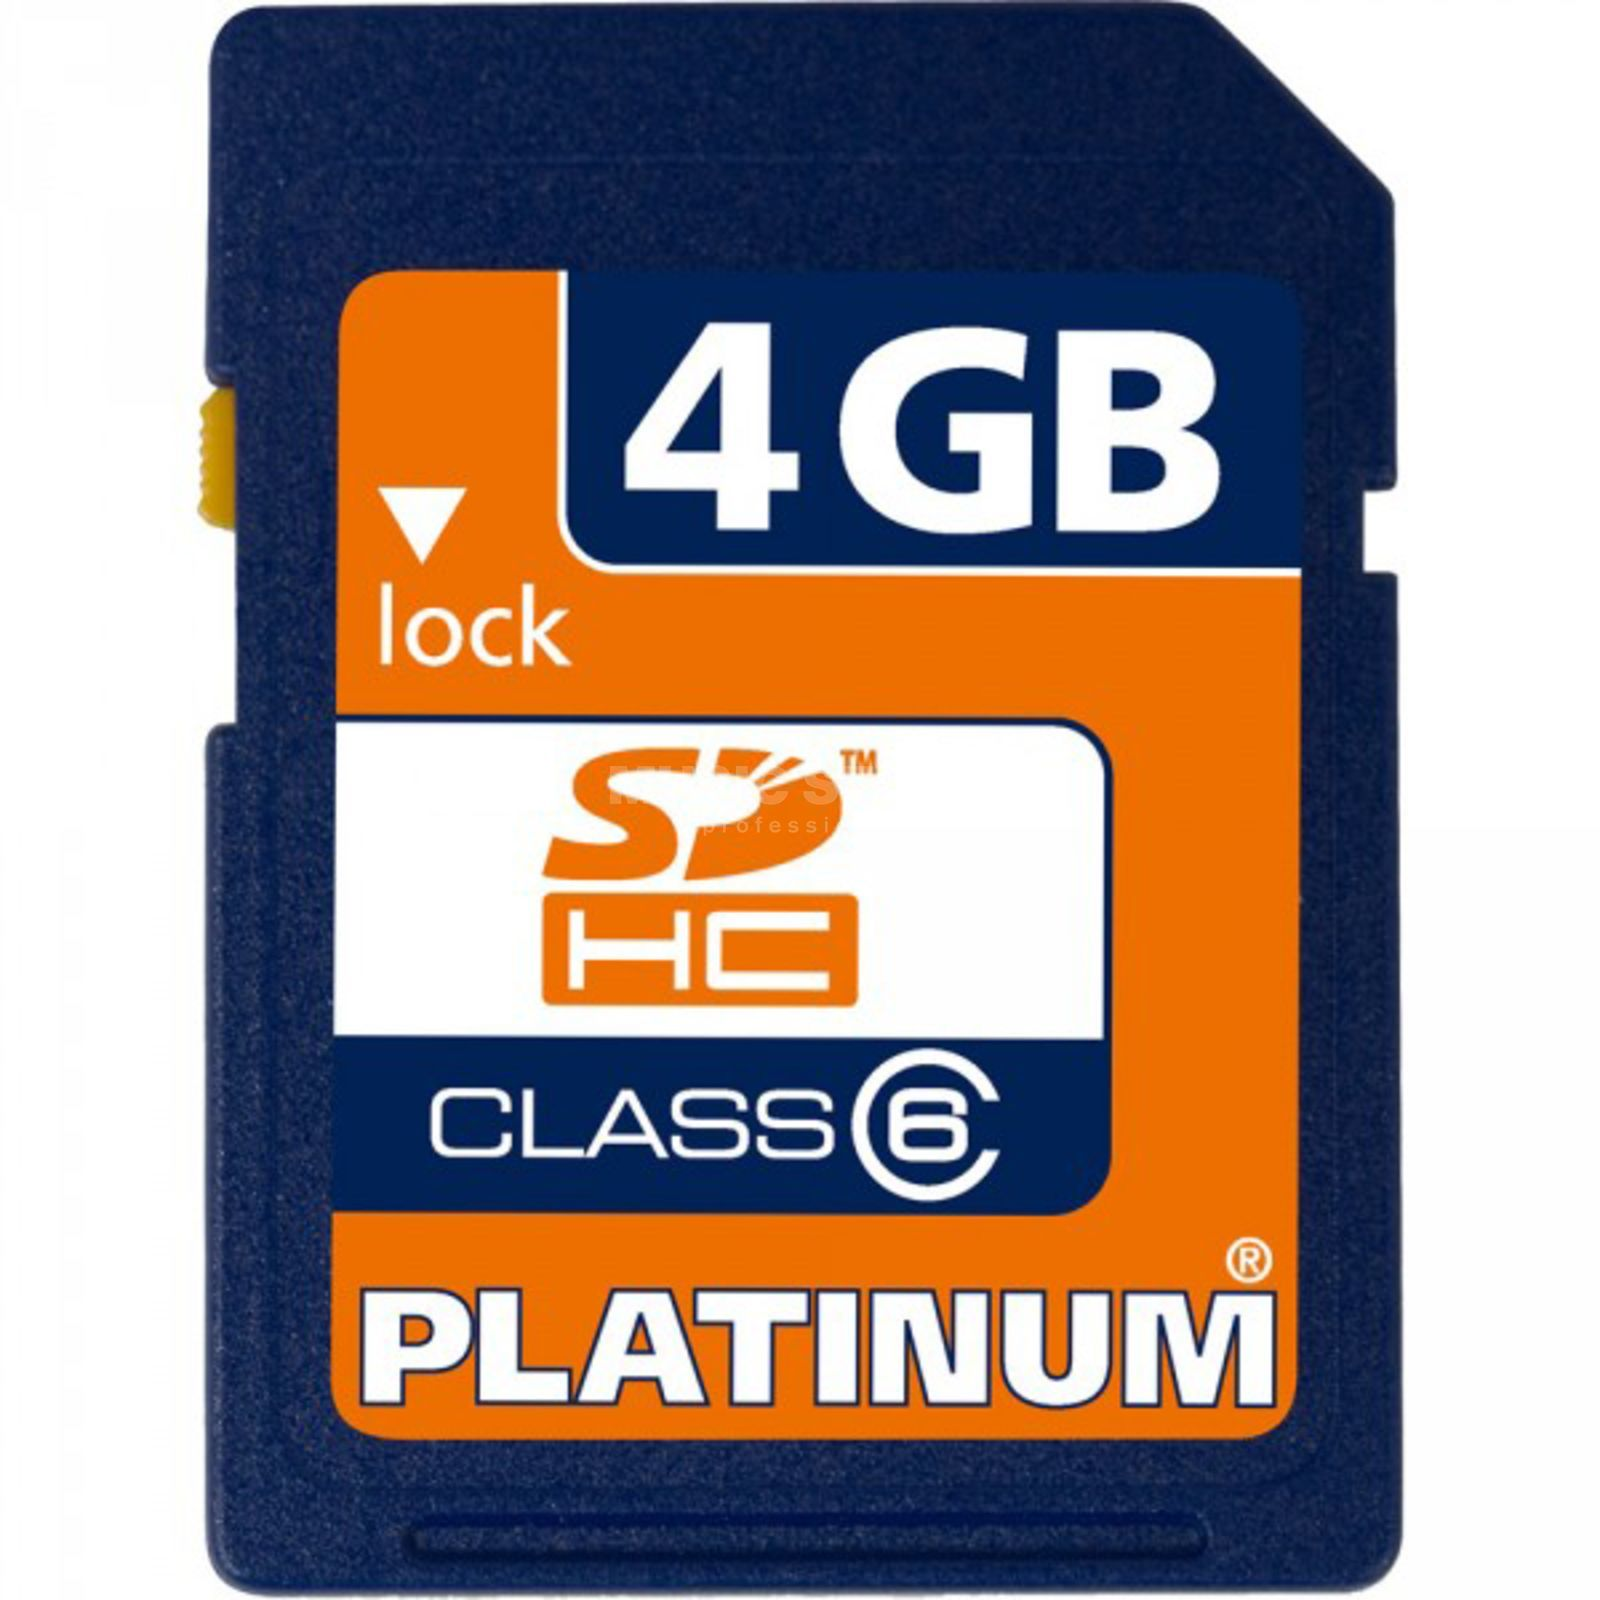 Platinum SDHC Card 4 GB High Speed SD-Card Class 6/10 Produktbild